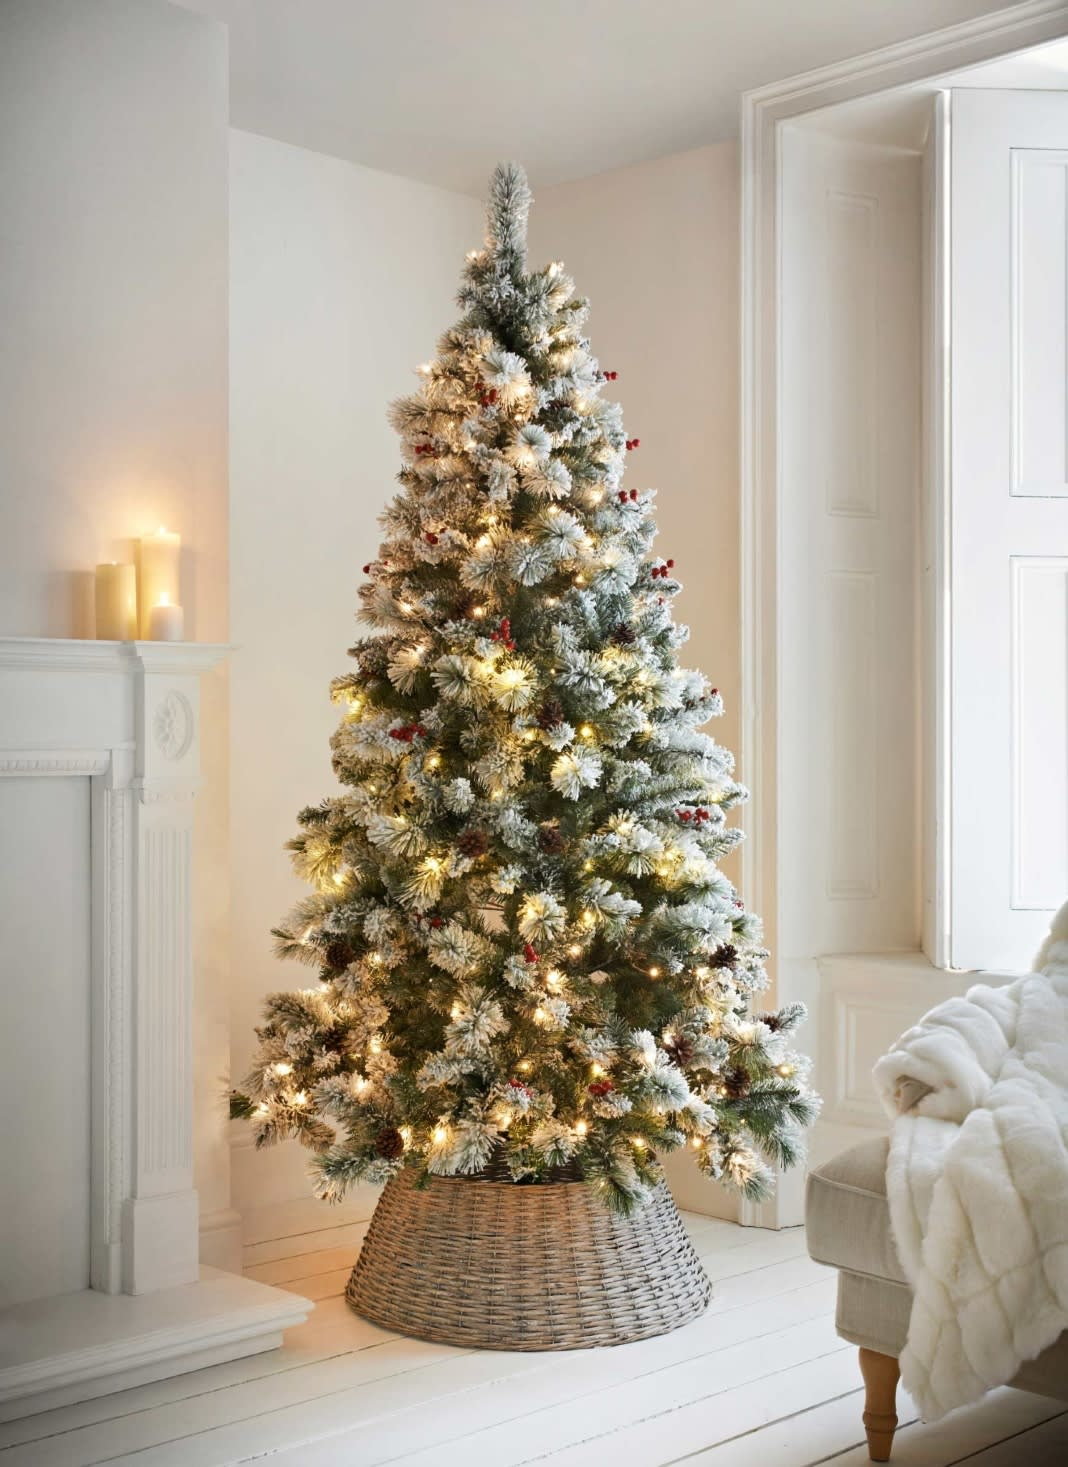 B&M Lifestyle | Best of B&M's Artificial Christmas Trees ...